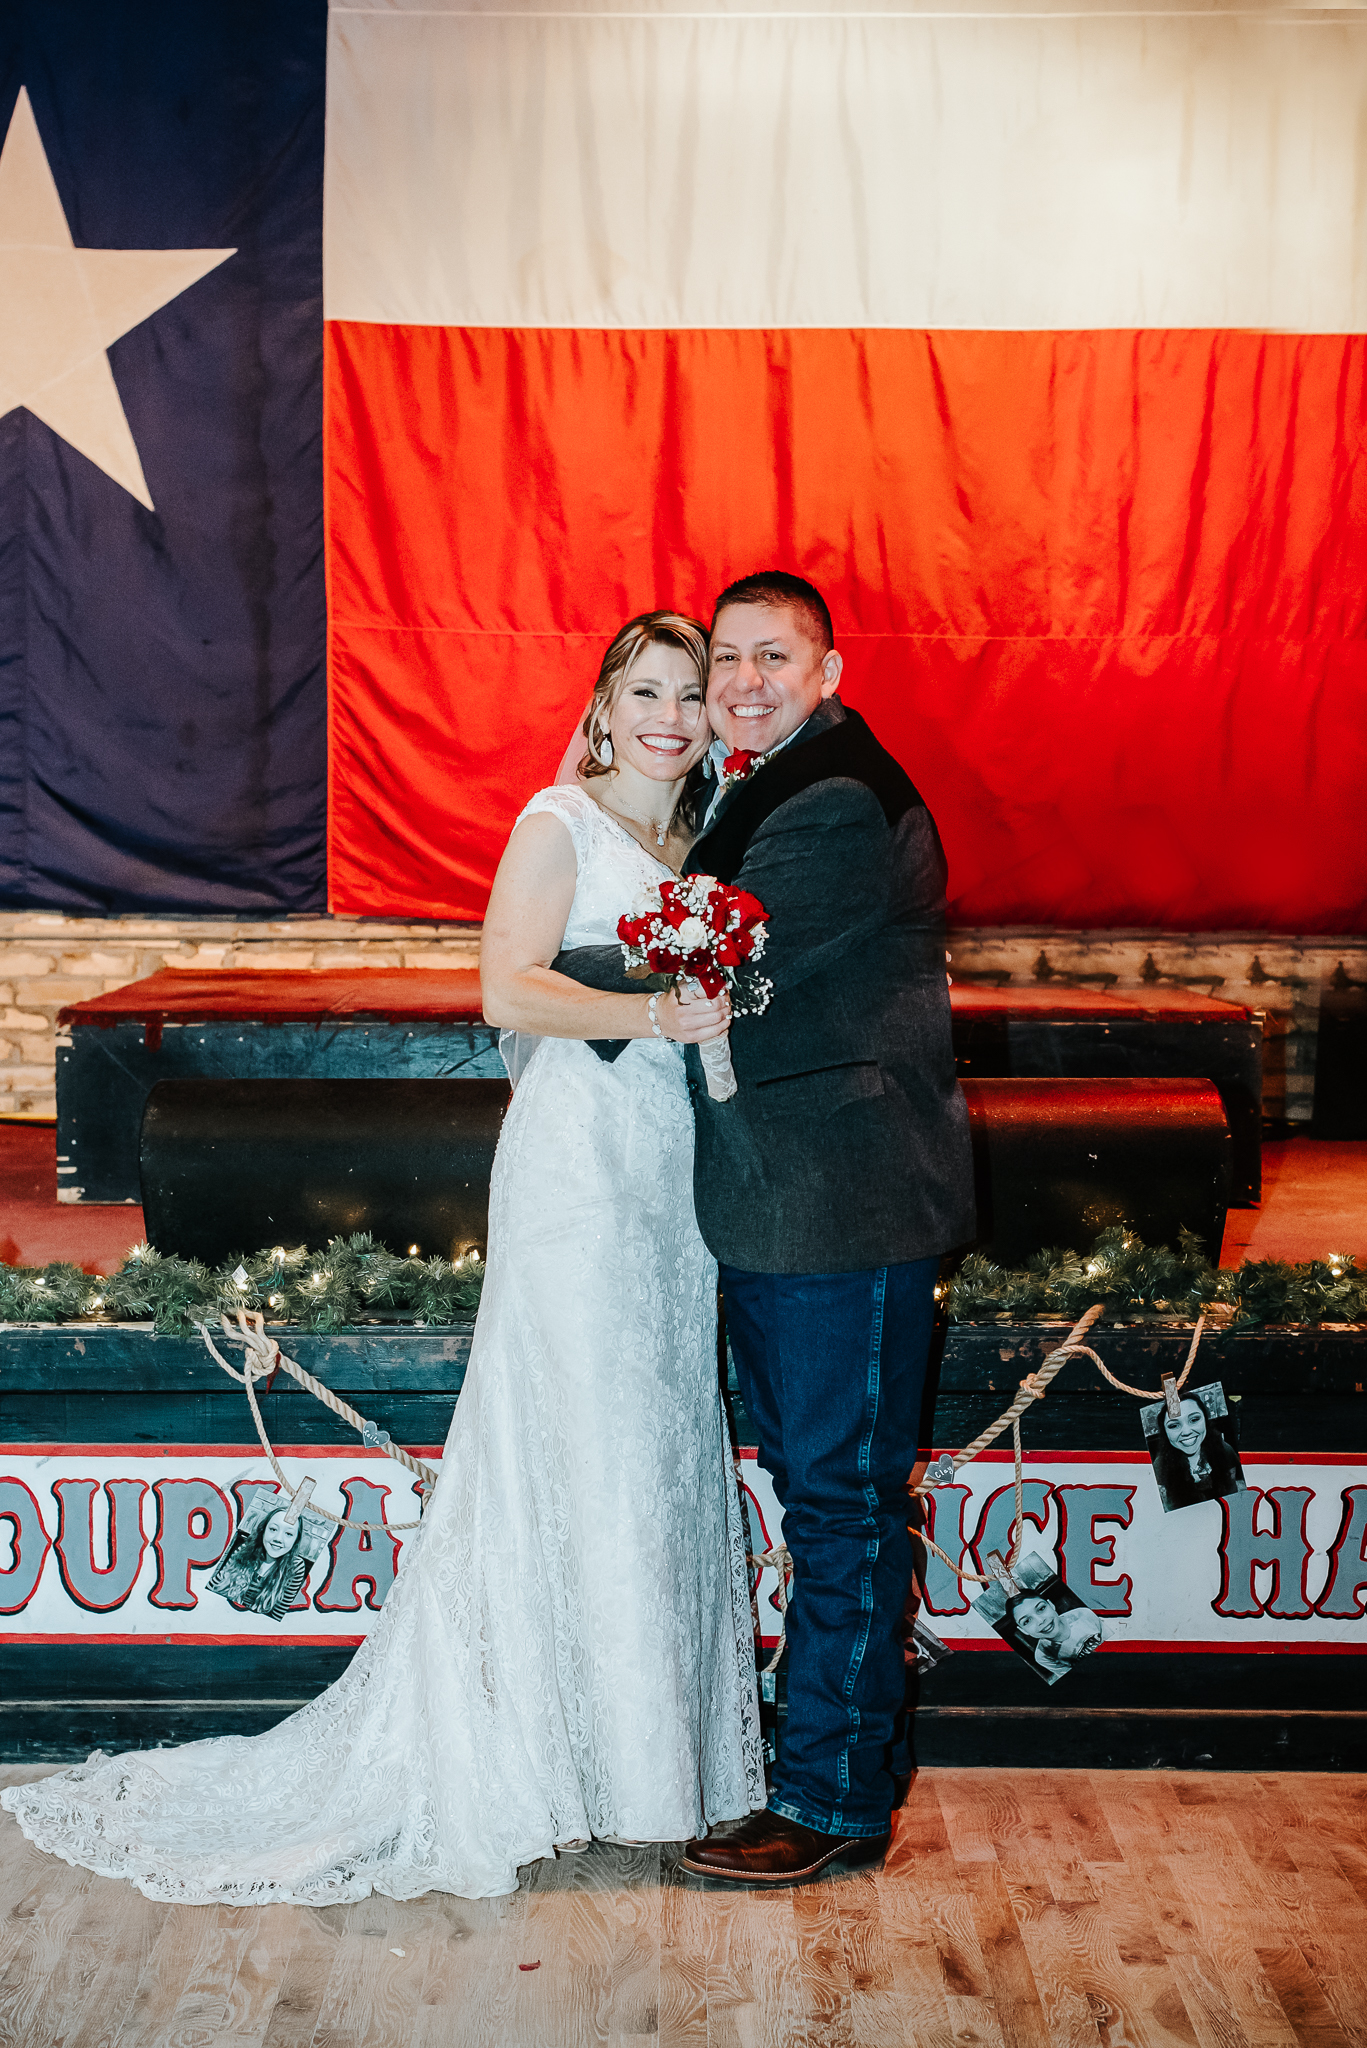 Wedding Photography_Round Rock Texas _Austin Texas_Pflugerville Texas_Coupland Dance Hall and Inn_Emily Ingalls Photography_Coupland Texas-3.jpg